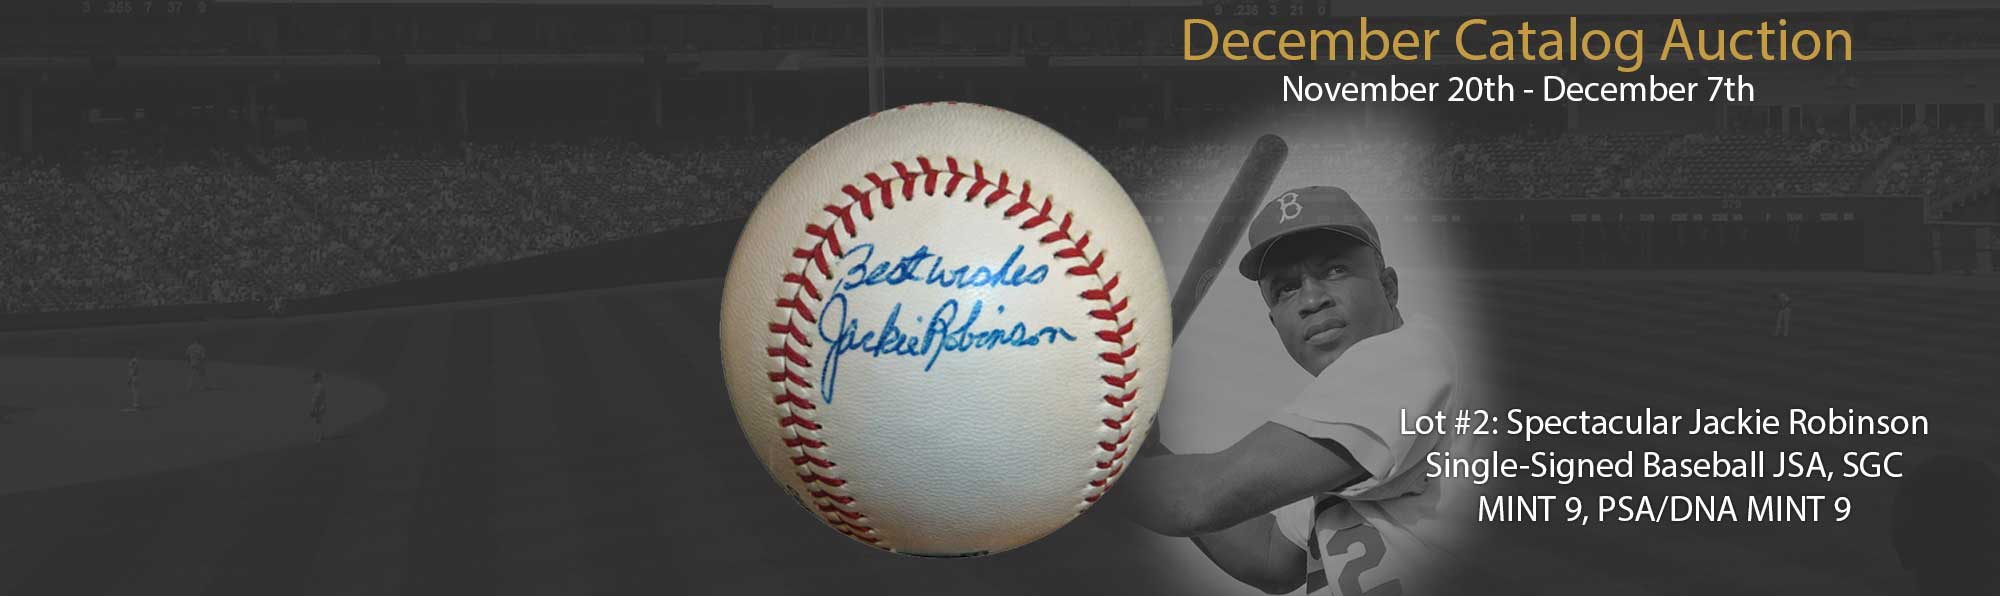 Spectacular Jackie Robinson Signed Ball